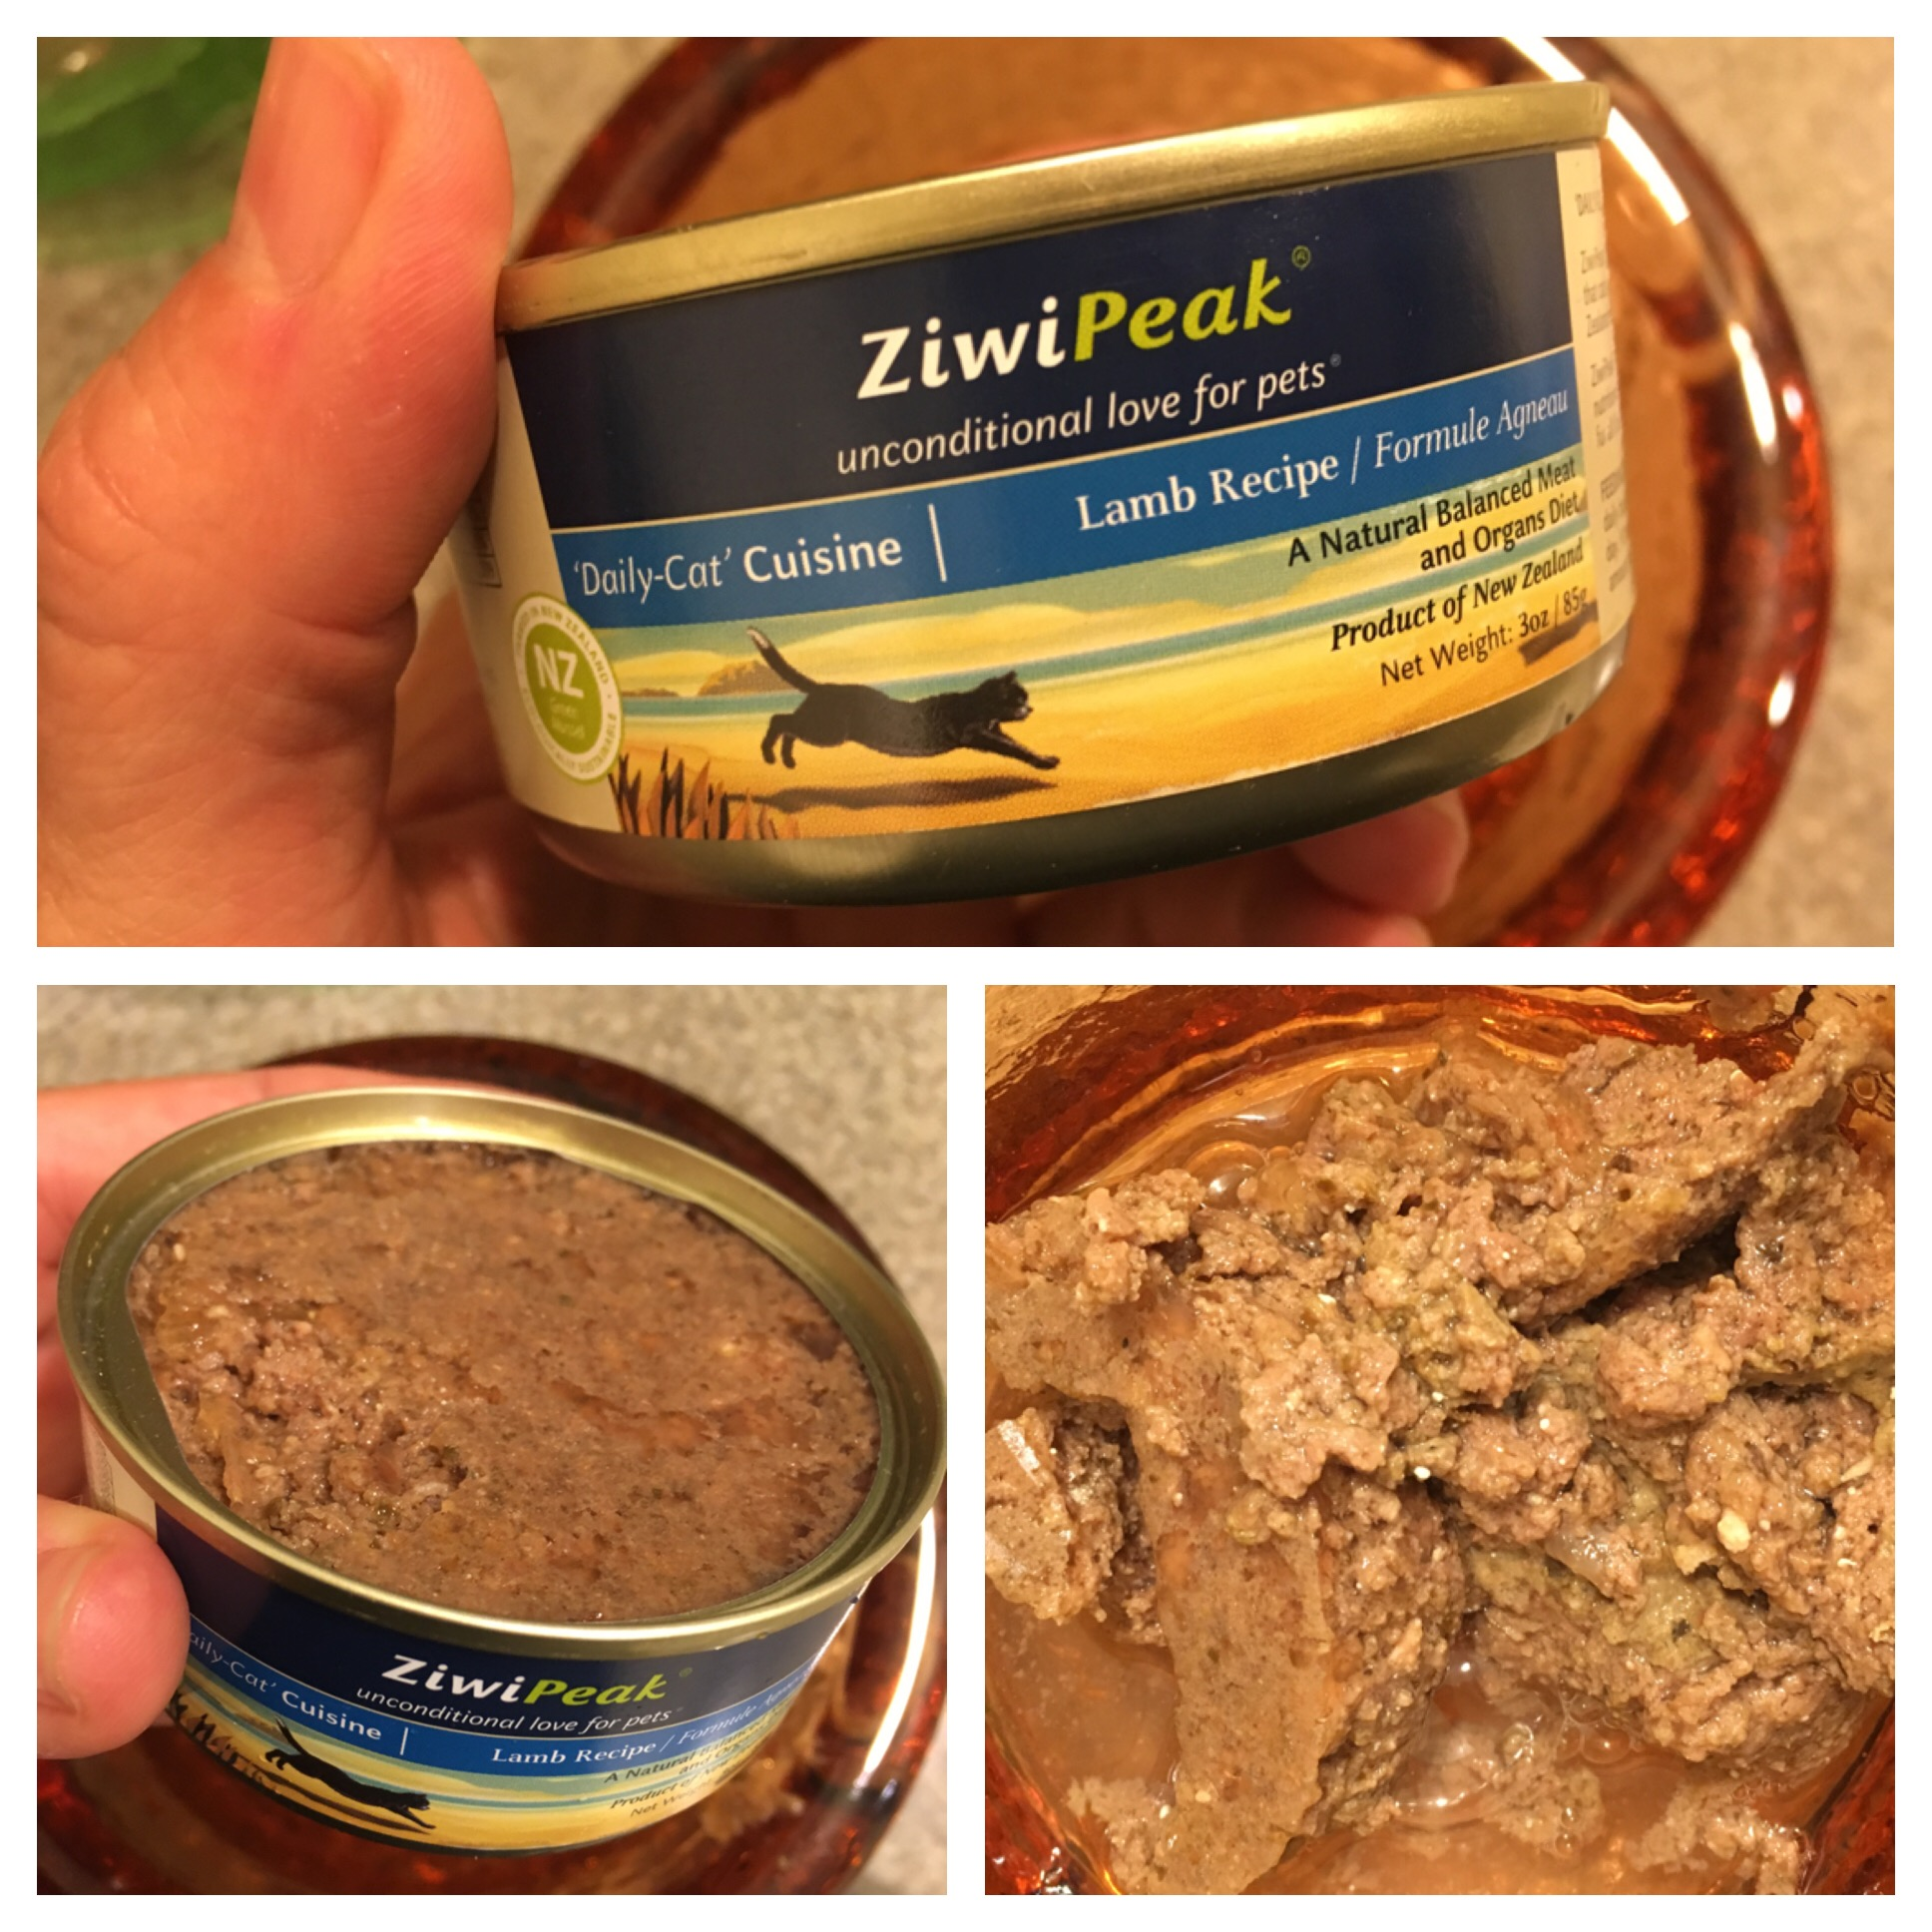 Ziwi Peak Canned Cat Food Lamp Recipe Inside of Can